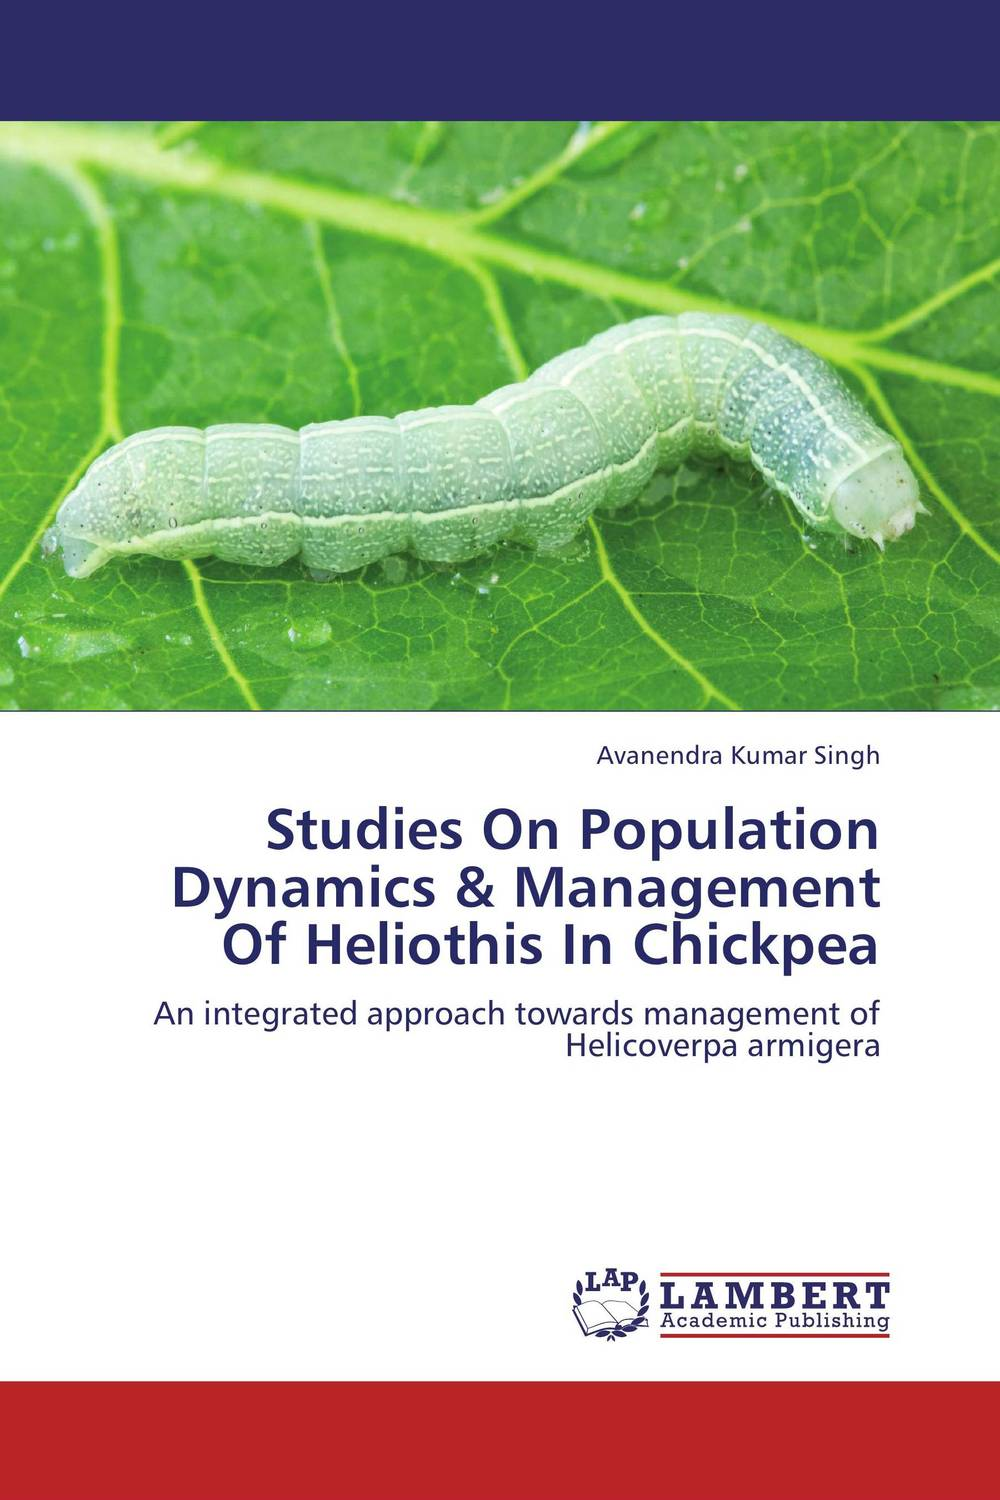 Studies On Population Dynamics & Management Of Heliothis In Chickpea ganesh deshmukh sudarshan latake and avinash satpute role of trichoderma viride in chickpea wilt